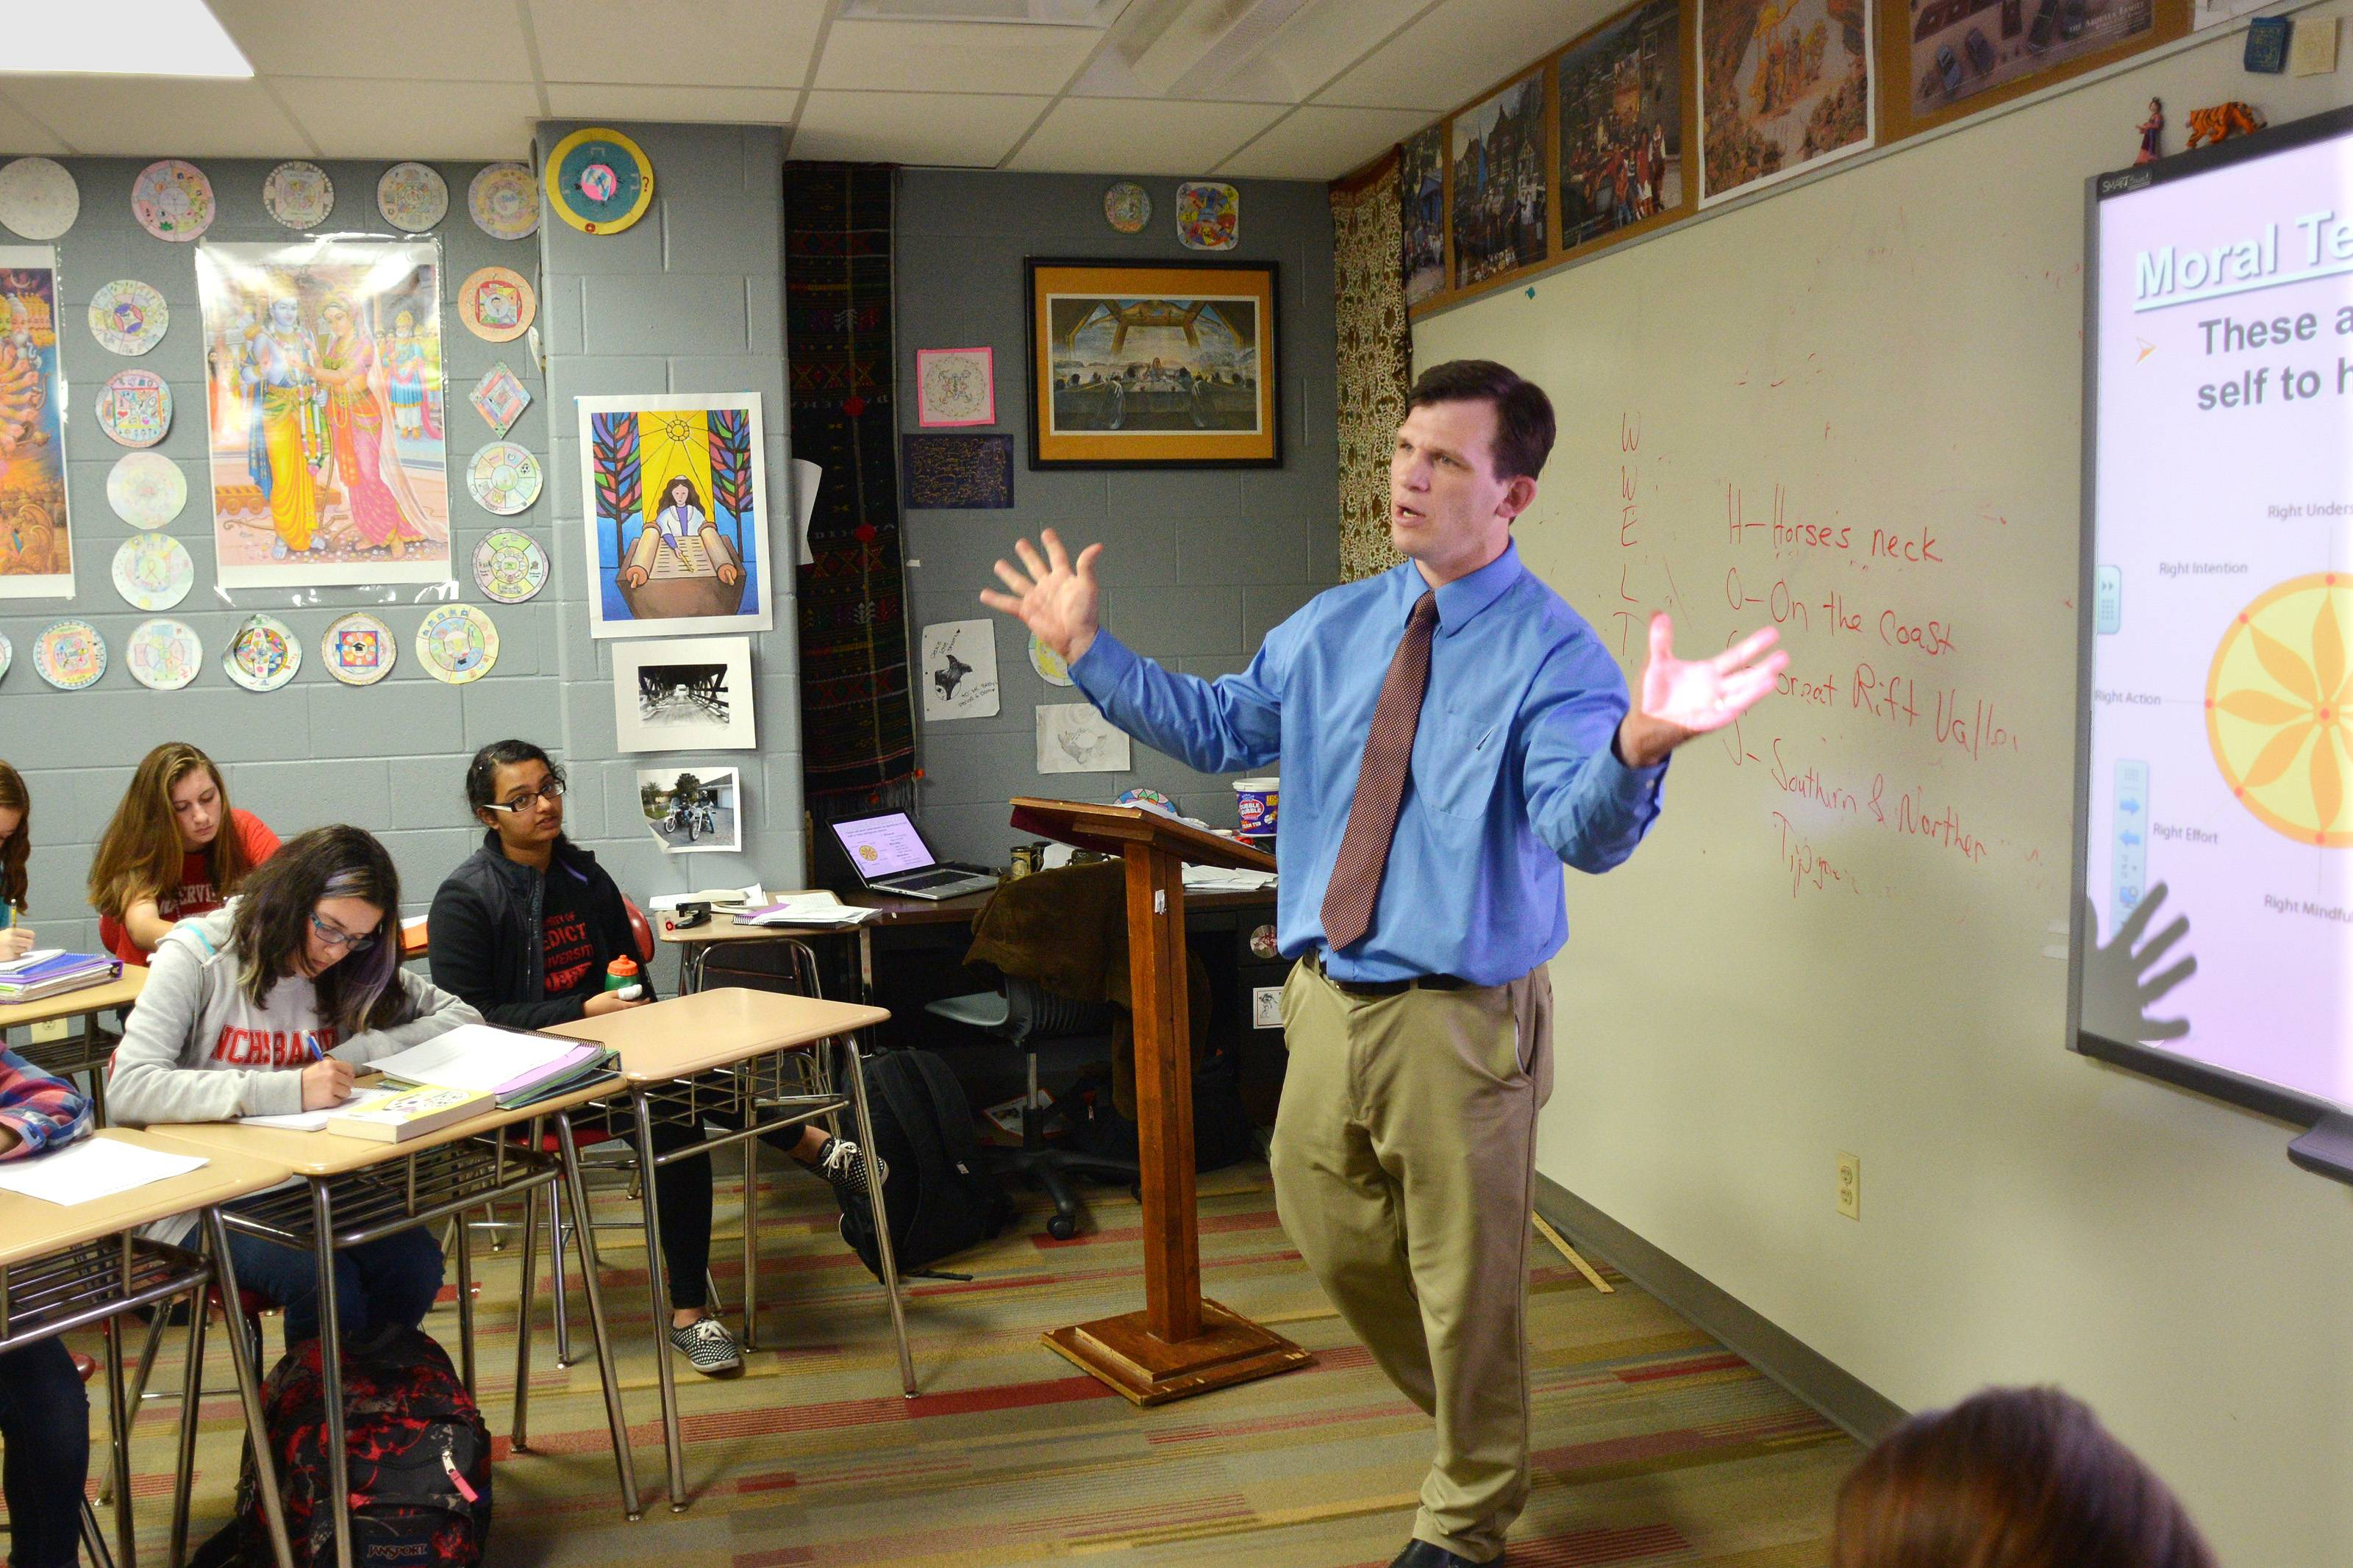 Seth Brady, a comparative religions and world cultures teacher at Naperville Central High School, says new guidelines for academic studies about religions in public schools will help teachers realize it is constitutionally appropriate to teach about various faith traditions without endorsing or opposing any of them.